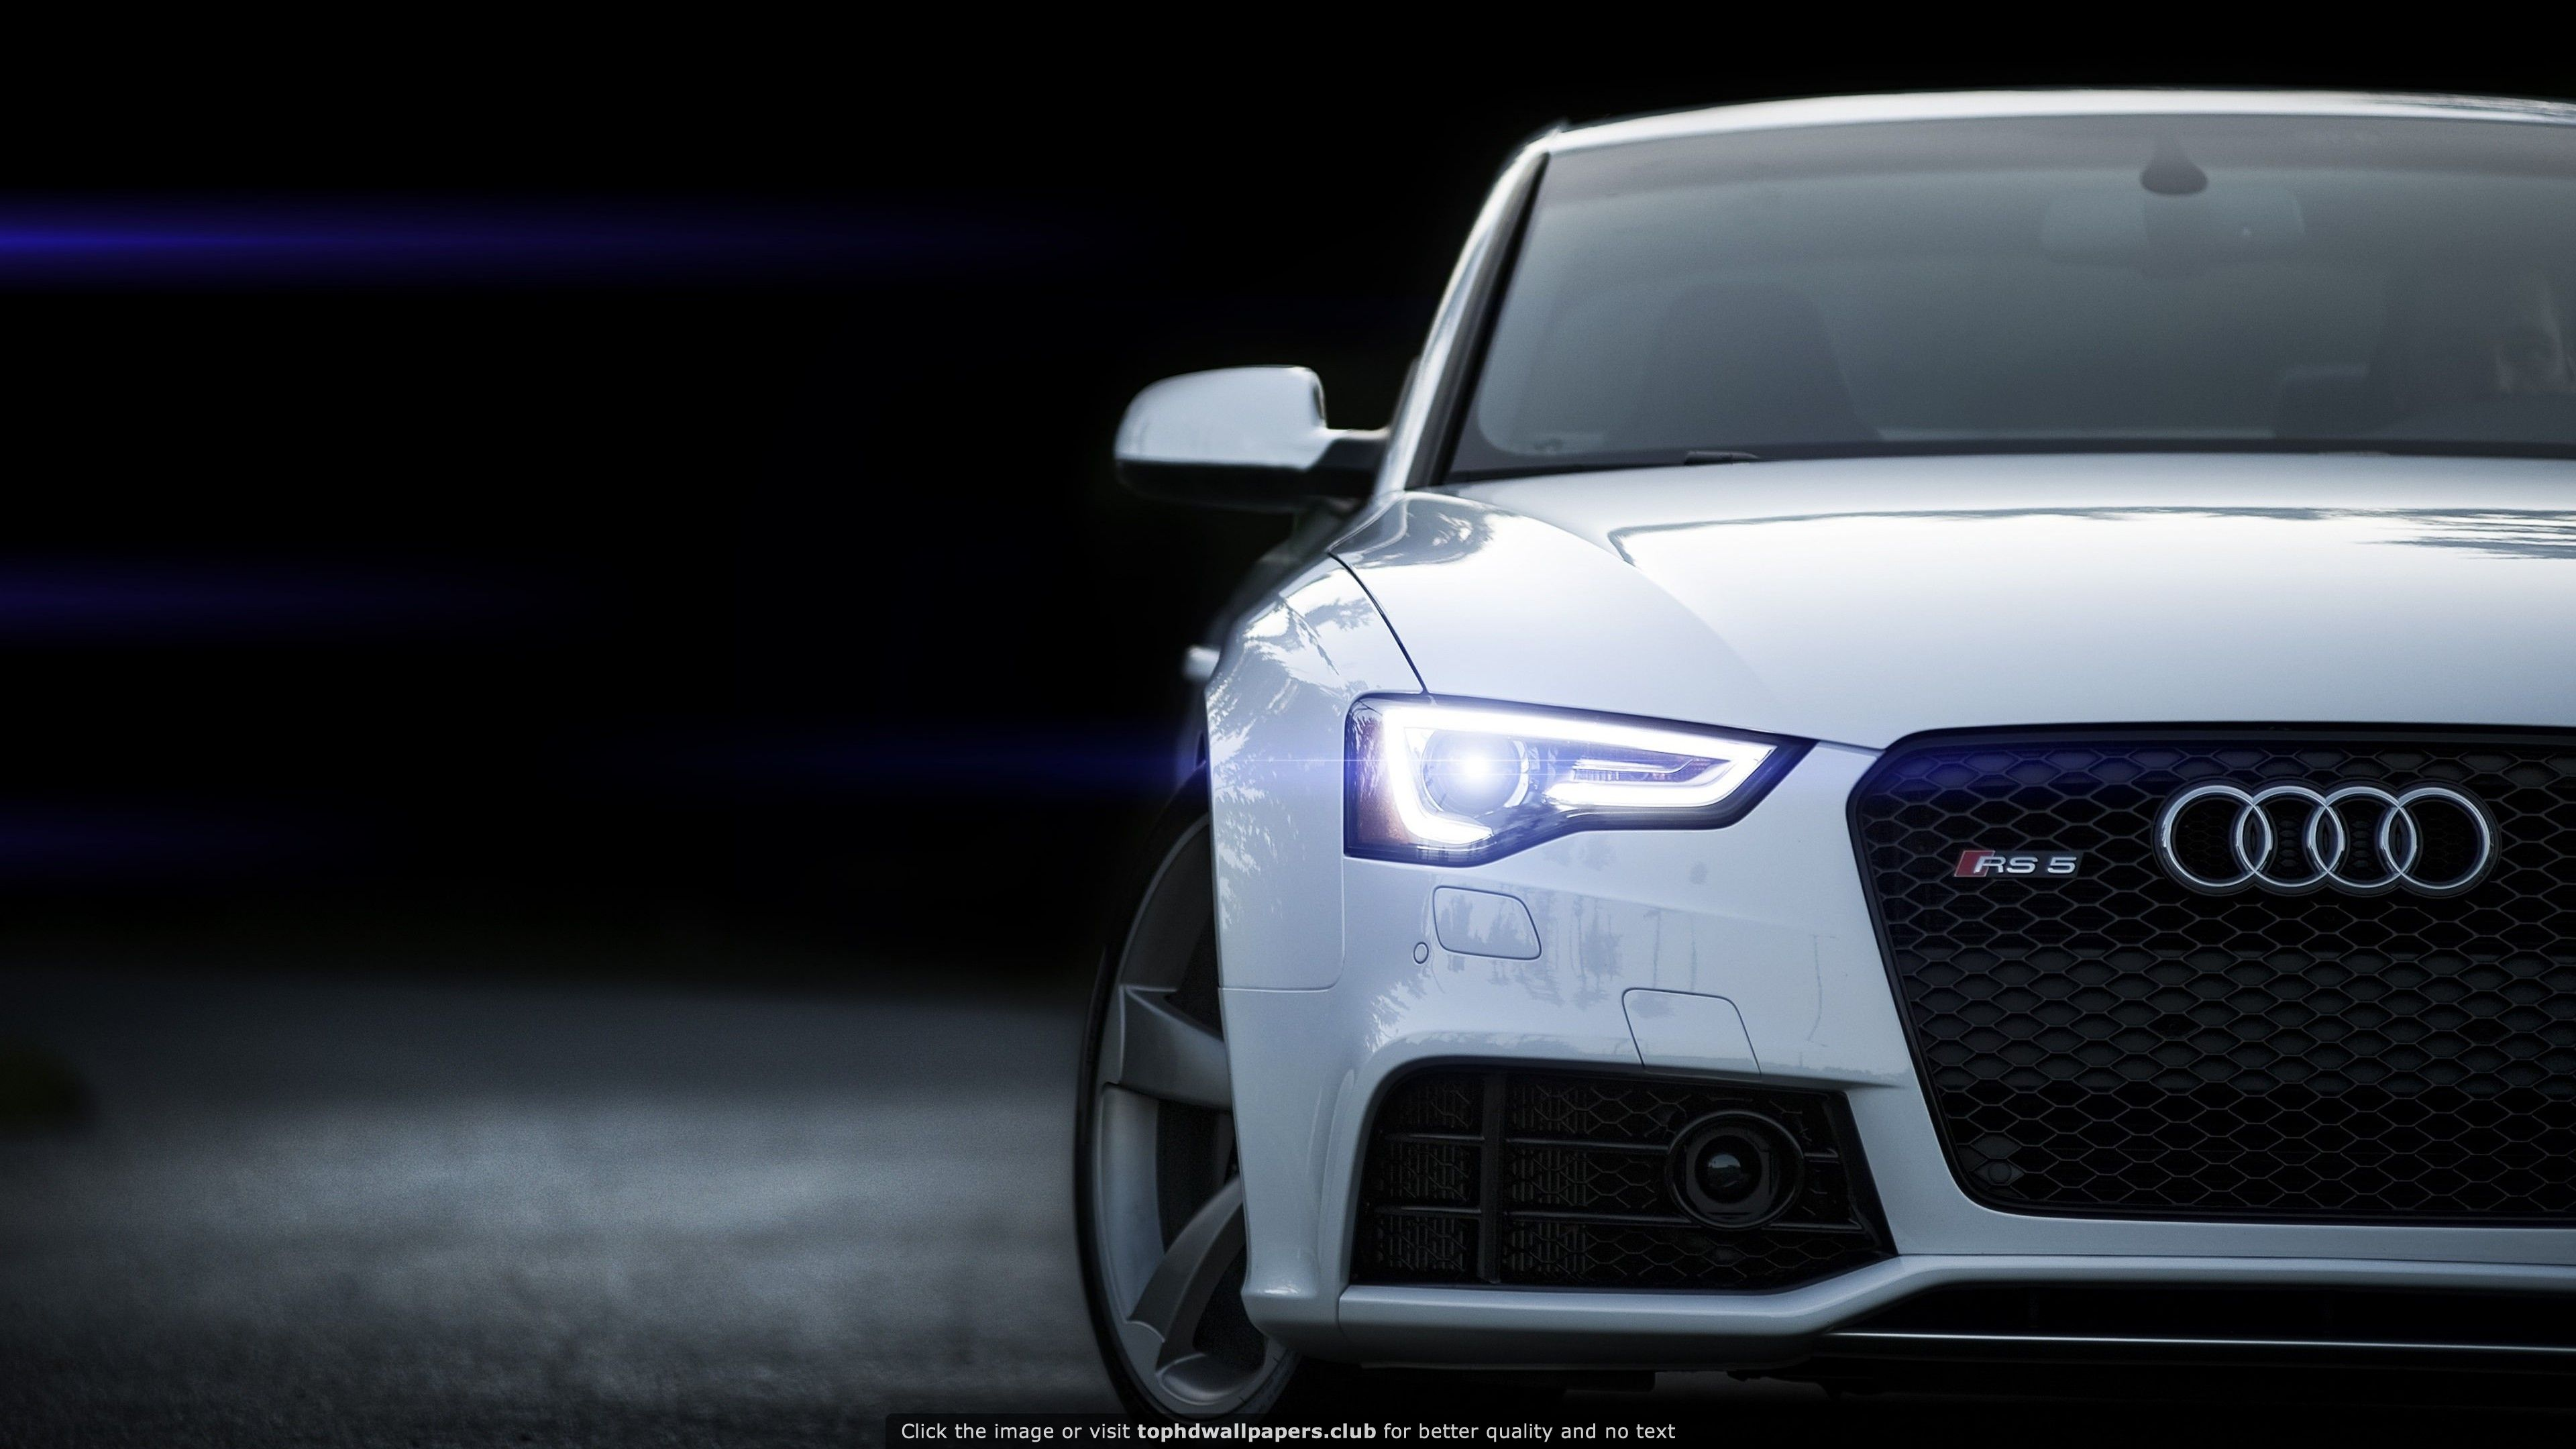 Audi Rs Coupe Hd Wallpaper For Your Pc Mac Or Mobile Device